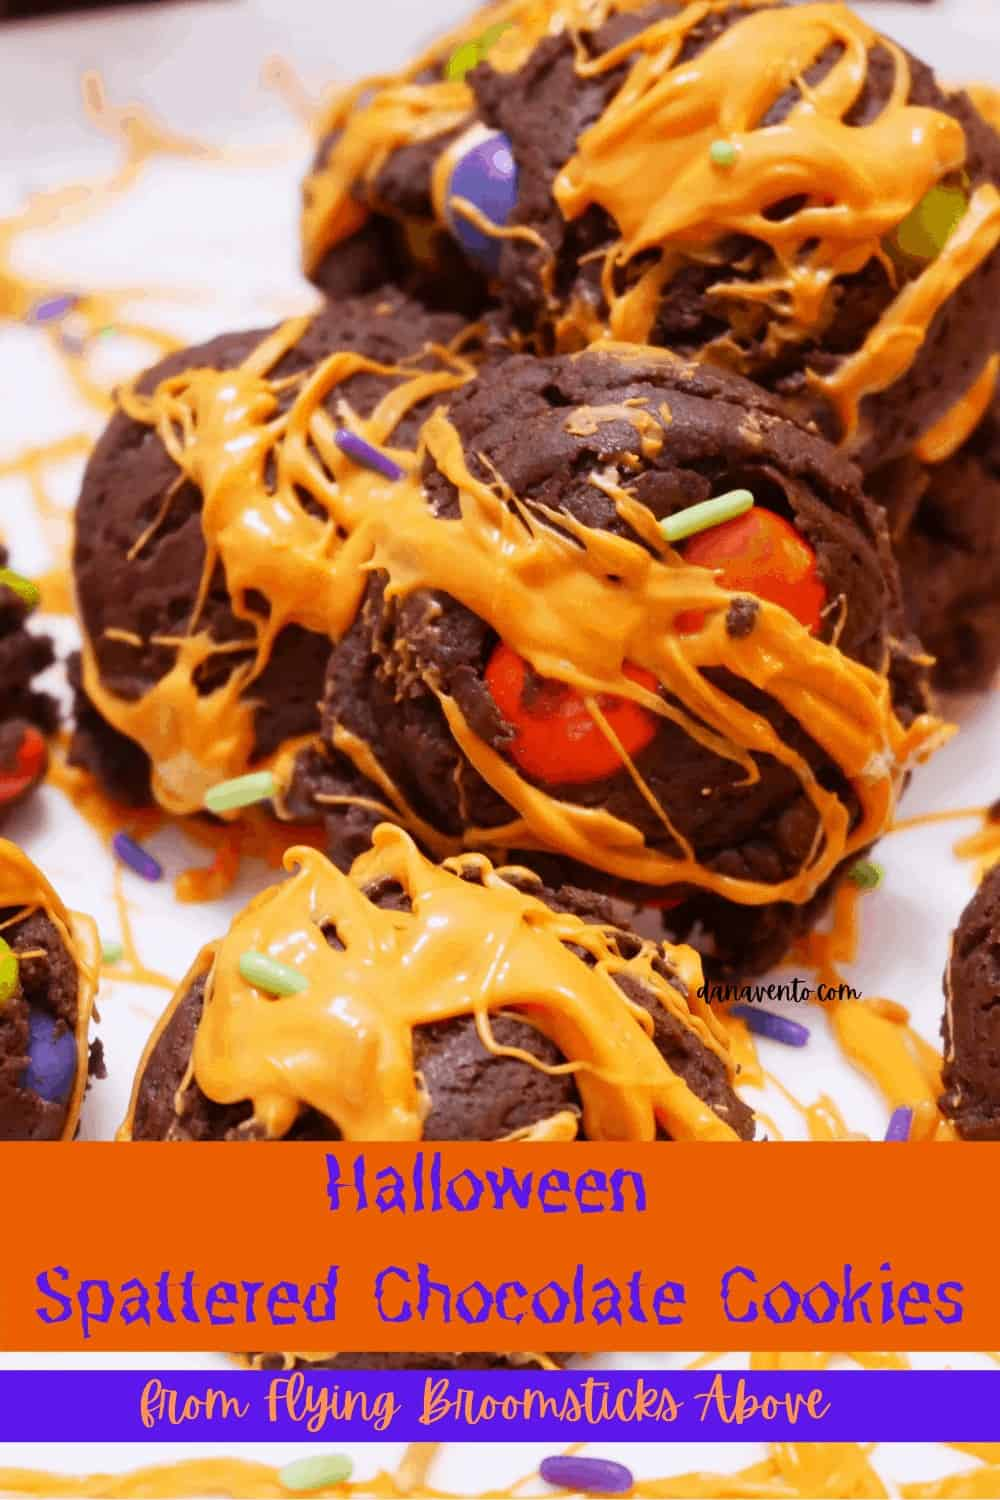 upclose image of Halloween Chocolate Spattered Cookies